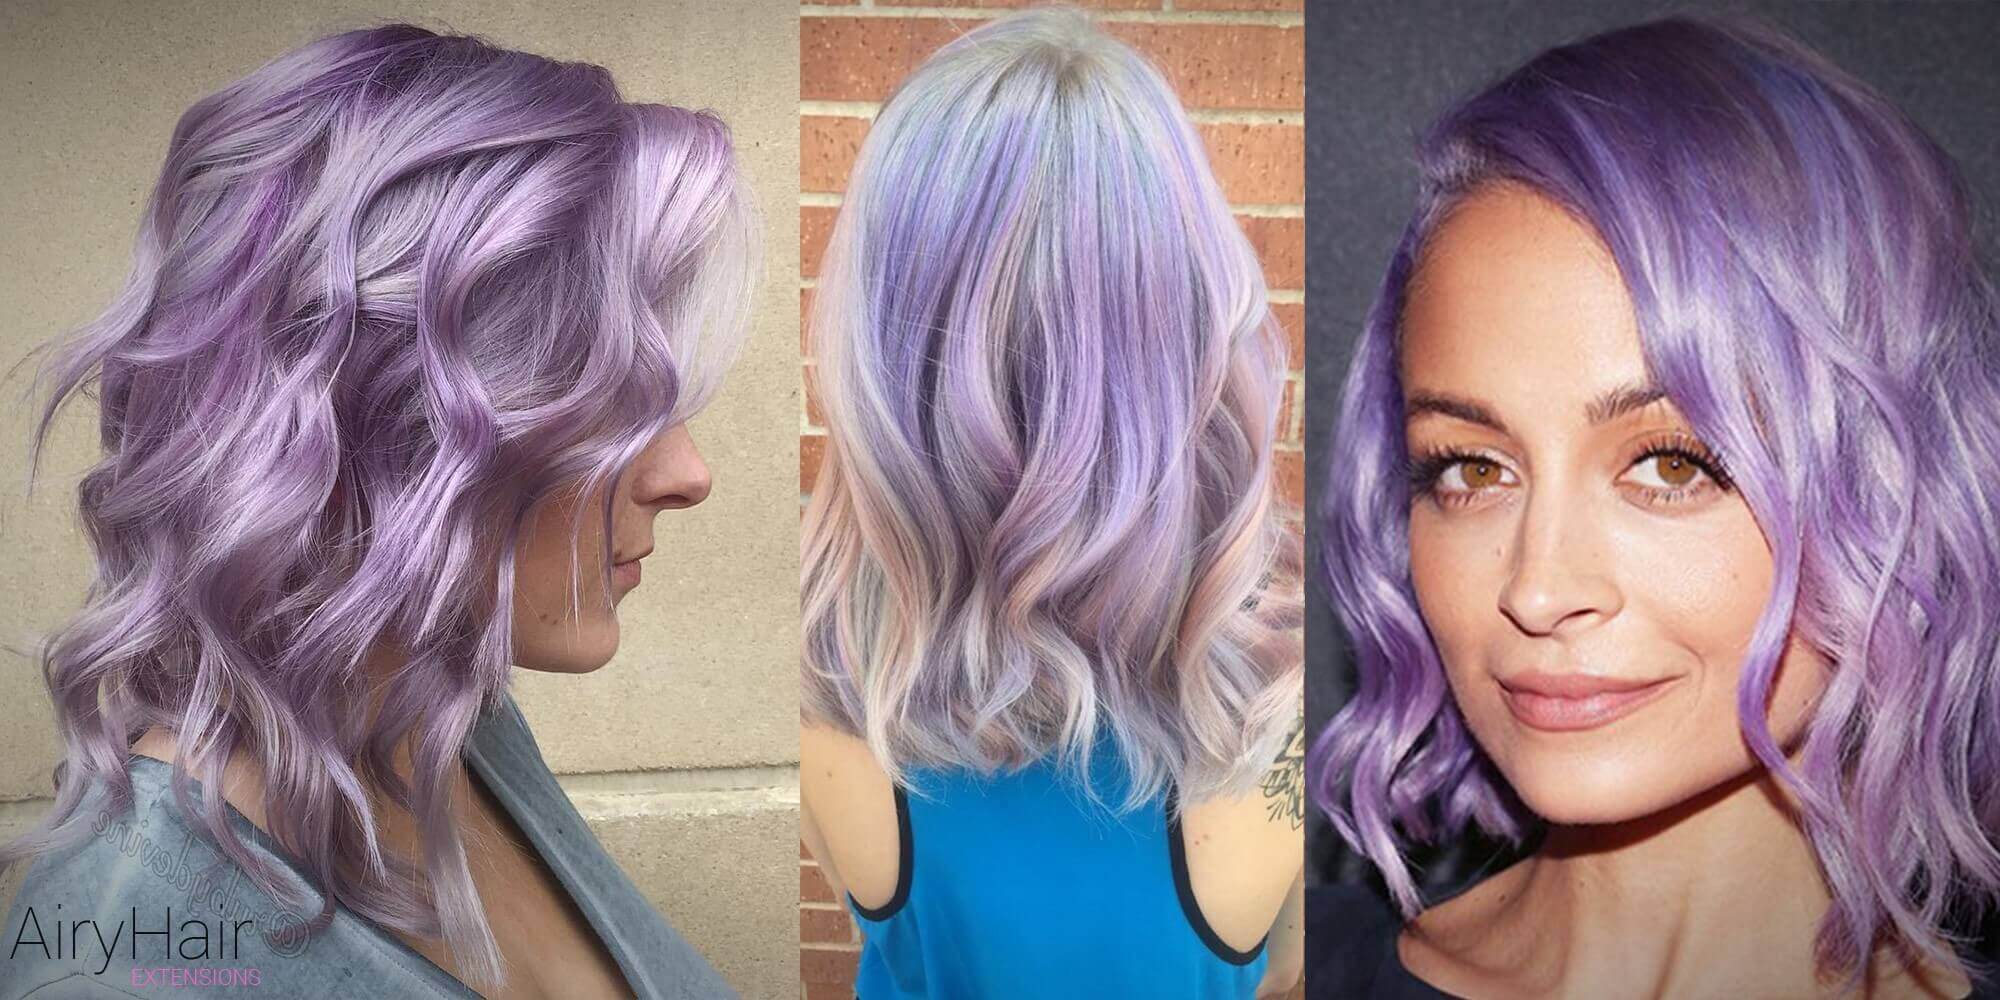 Curly Mid-length Pastel Hairstyle